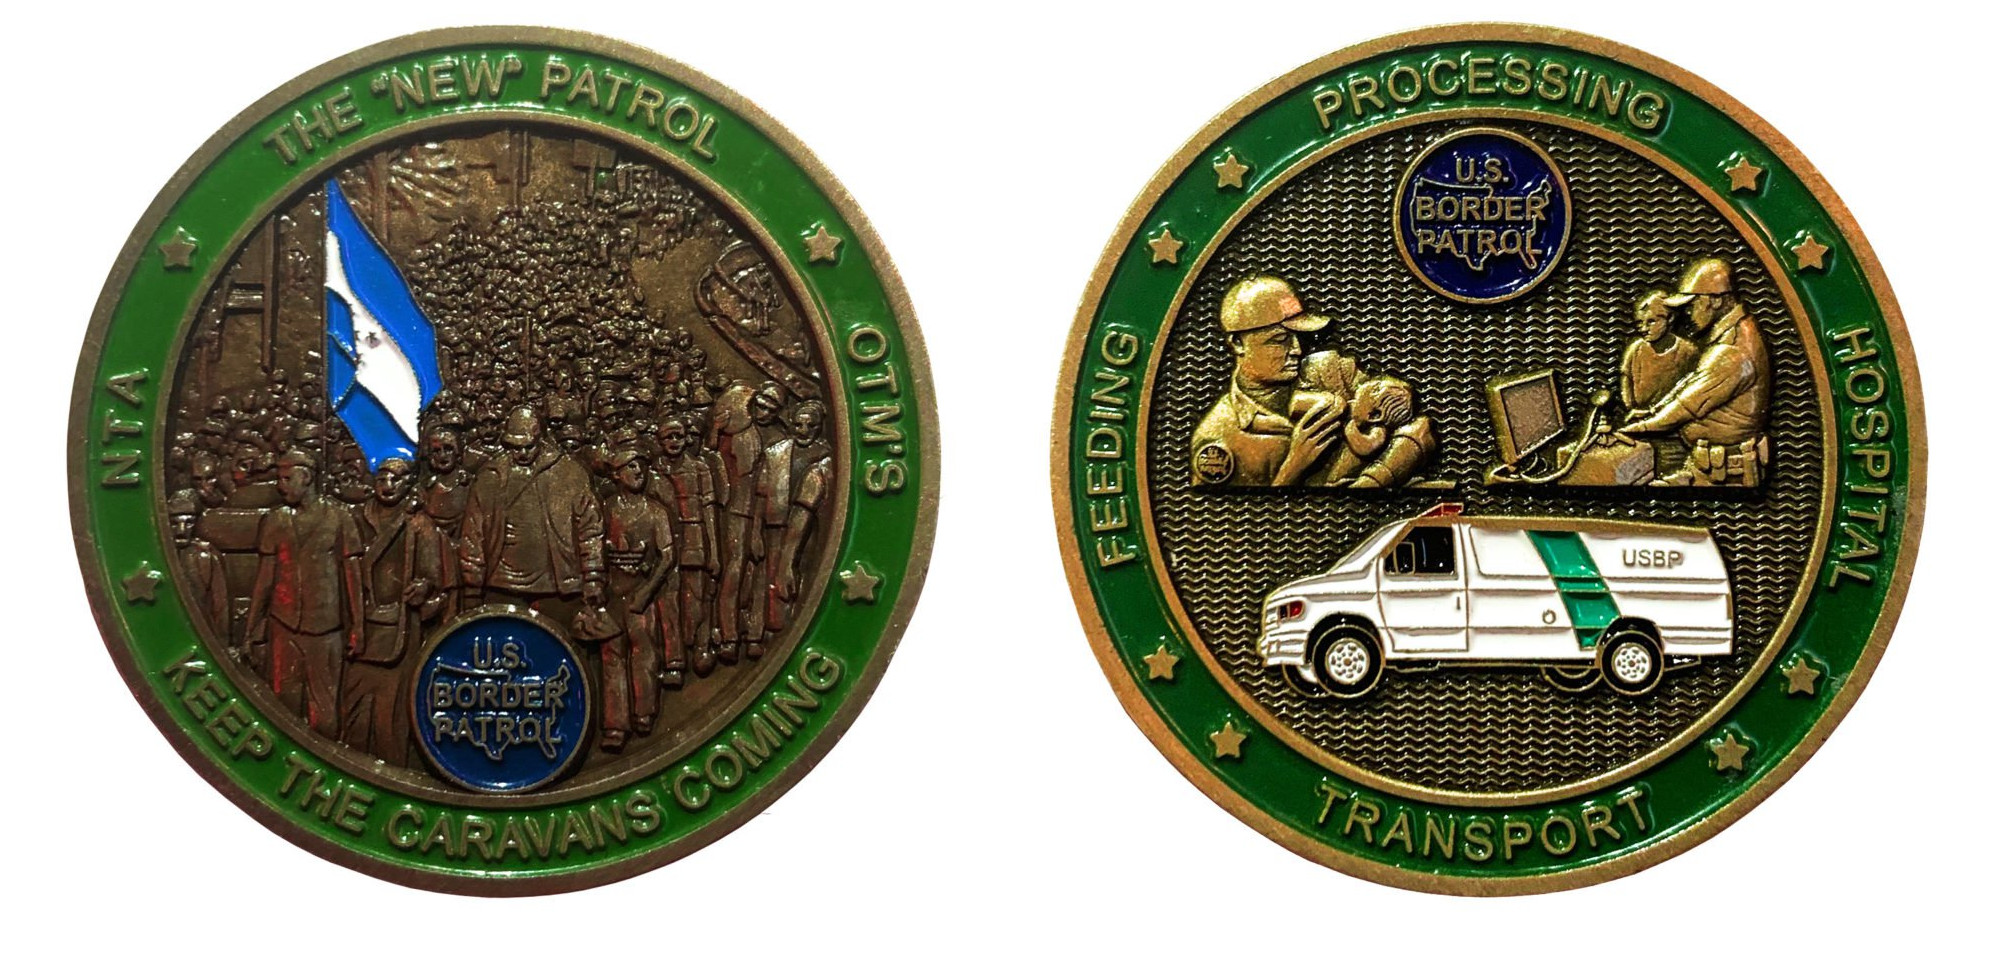 CBP employees' new challenge coin mocks care for migrant kids